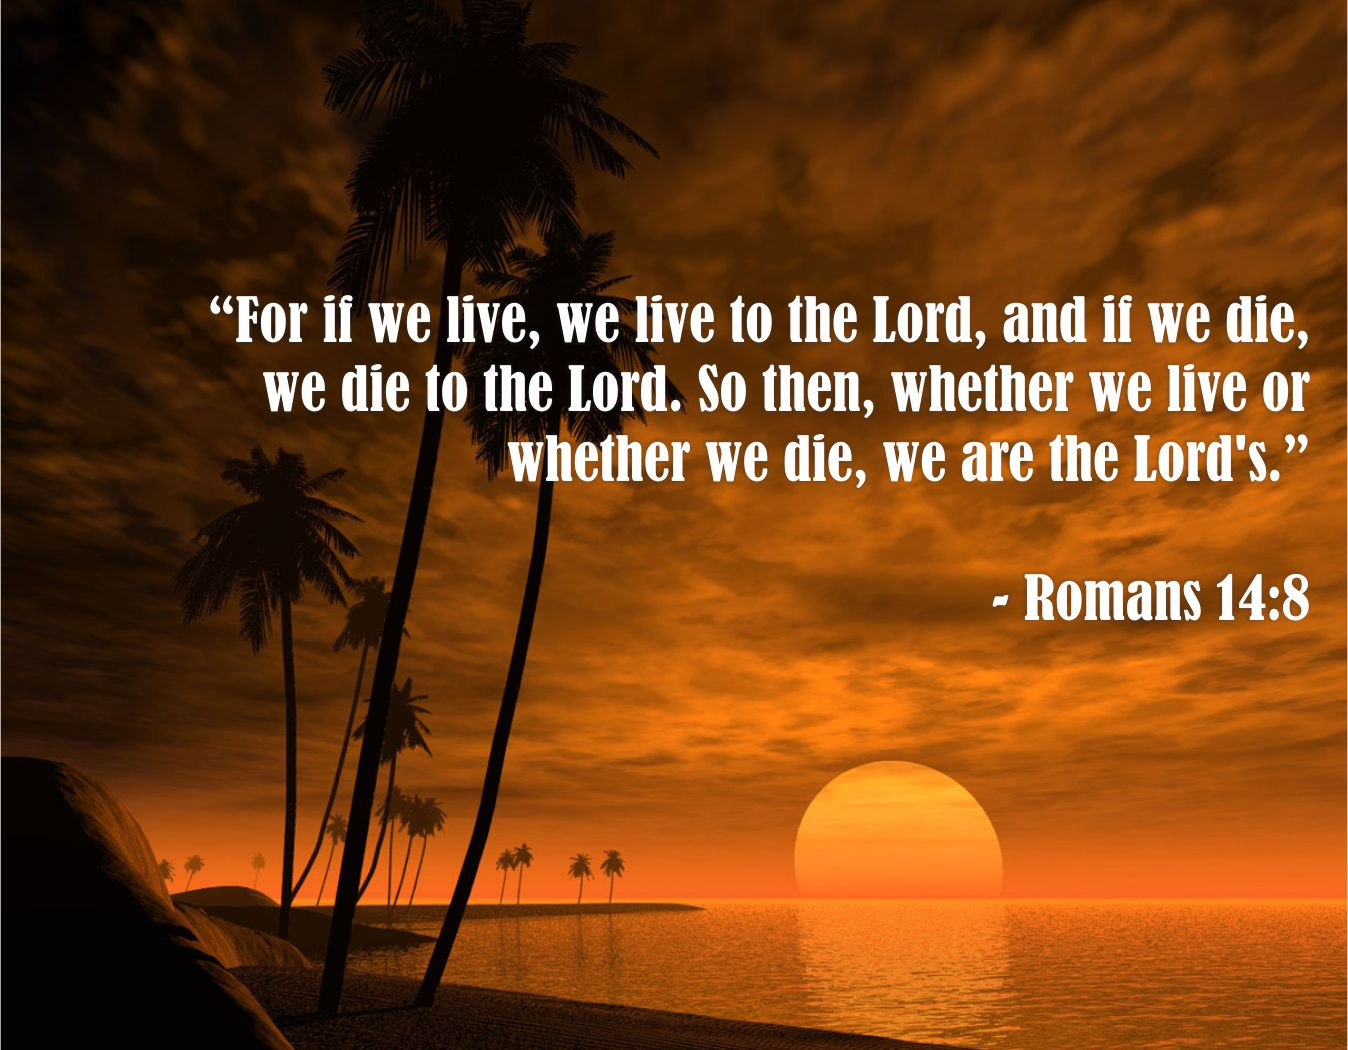 Bible Quotes About Death Tagalog Prayers and Christian Quotes: Bible Quotes About Death  Bible Quotes About Death